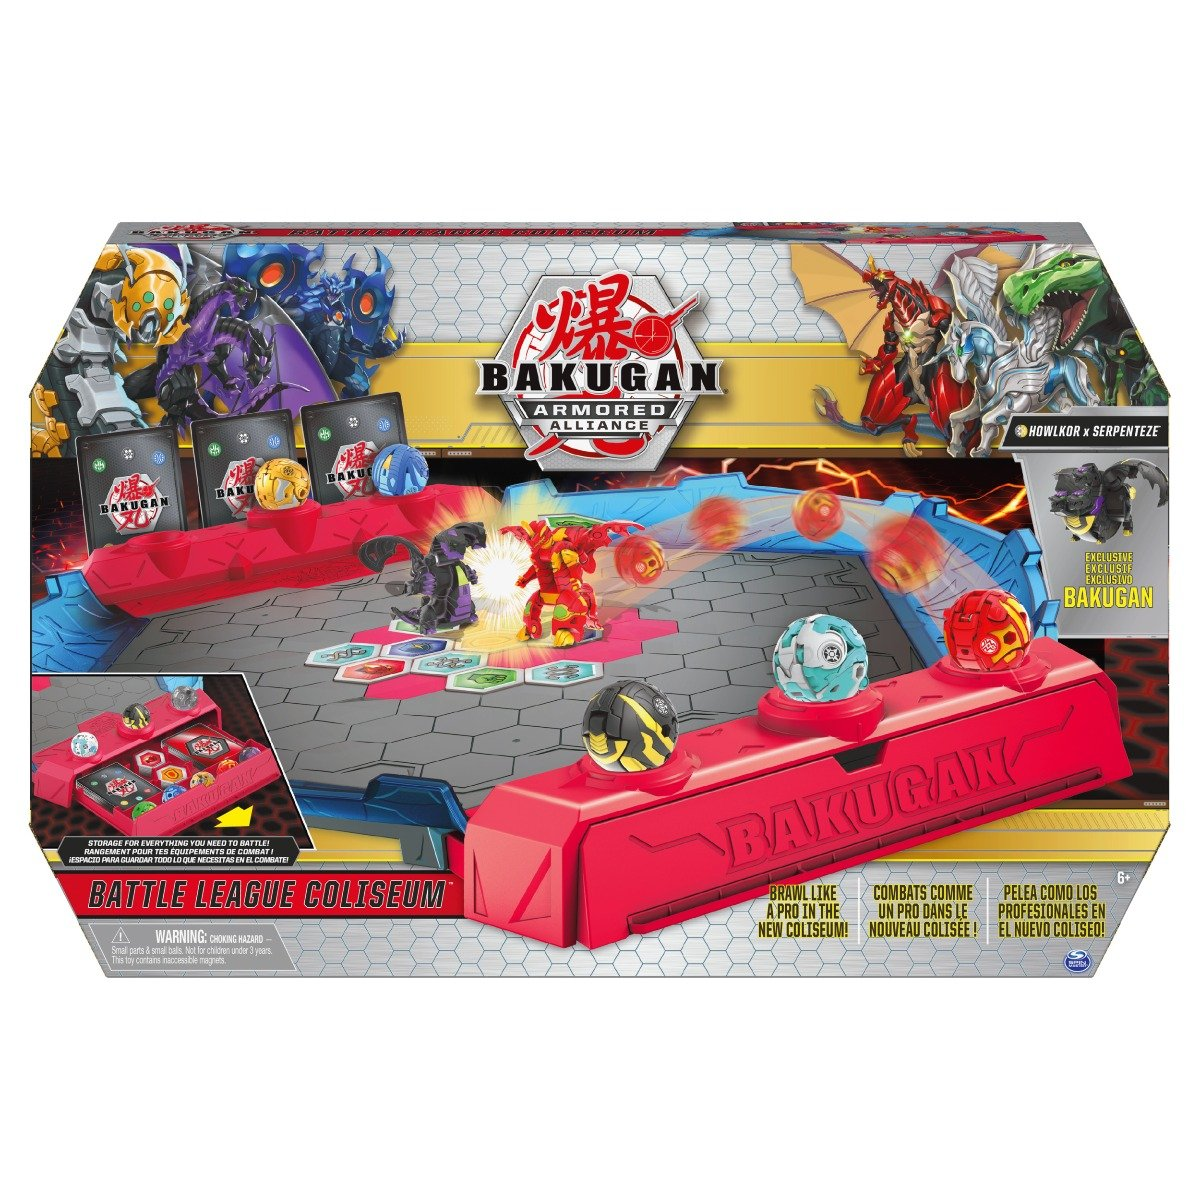 Poza Arena de lupta Bakugan Armored Alliance, Battle League Coliseum